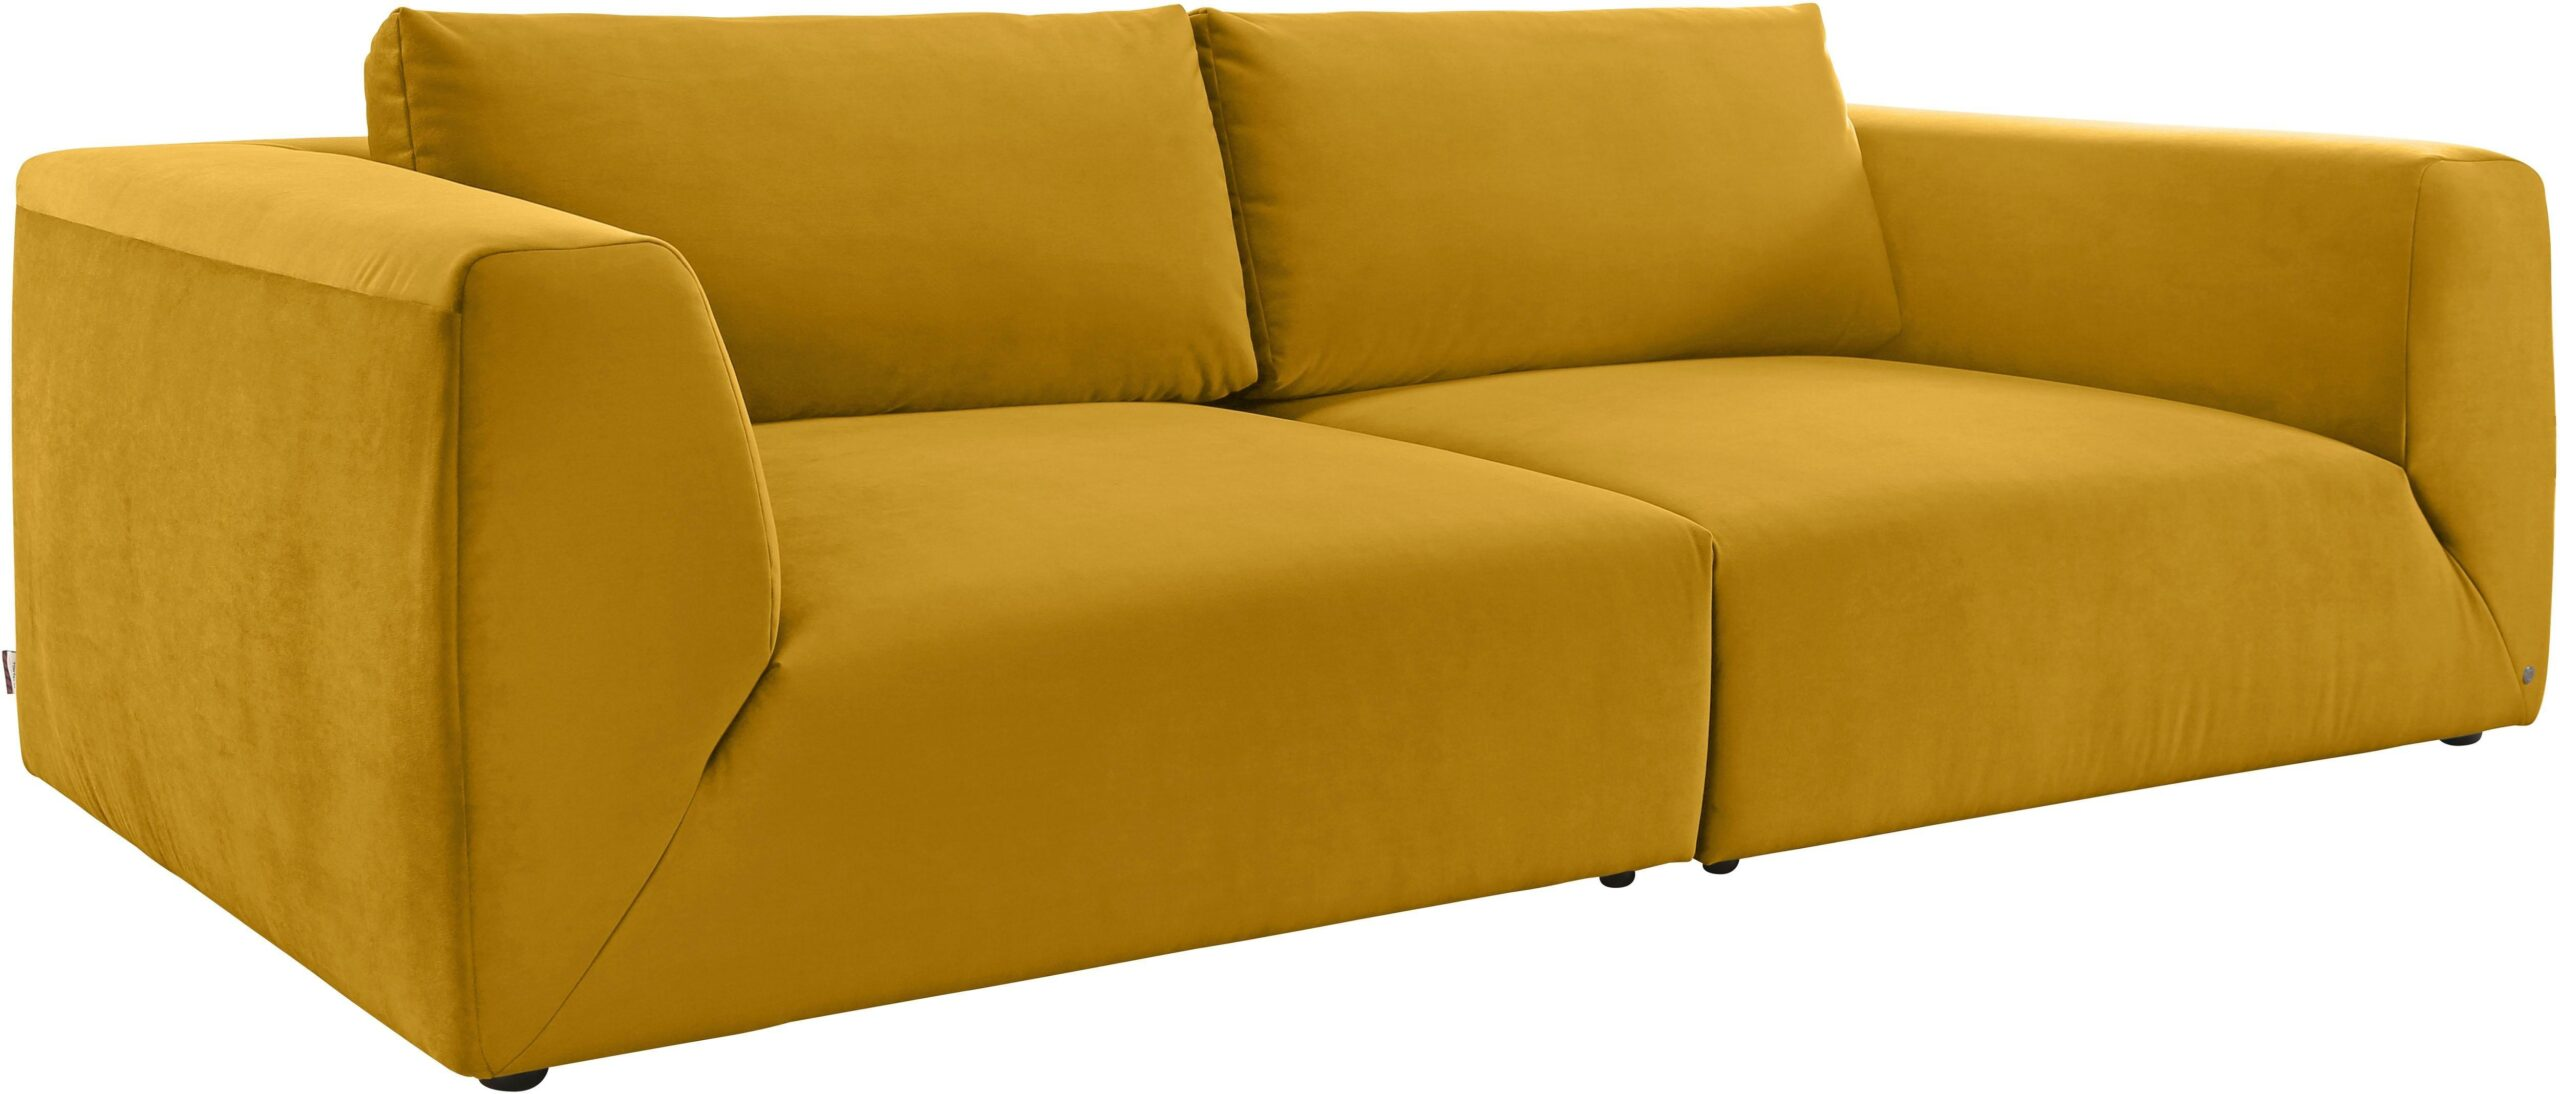 Full Size of Sofa Tom Tailor Heaven Xl Otto Couch Nordic Chic West Coast Style Big Pure Colors Cube Round Bequem Auf Raten Kaufen Modernes Garnitur Cognac Leder Sofa Sofa Tom Tailor